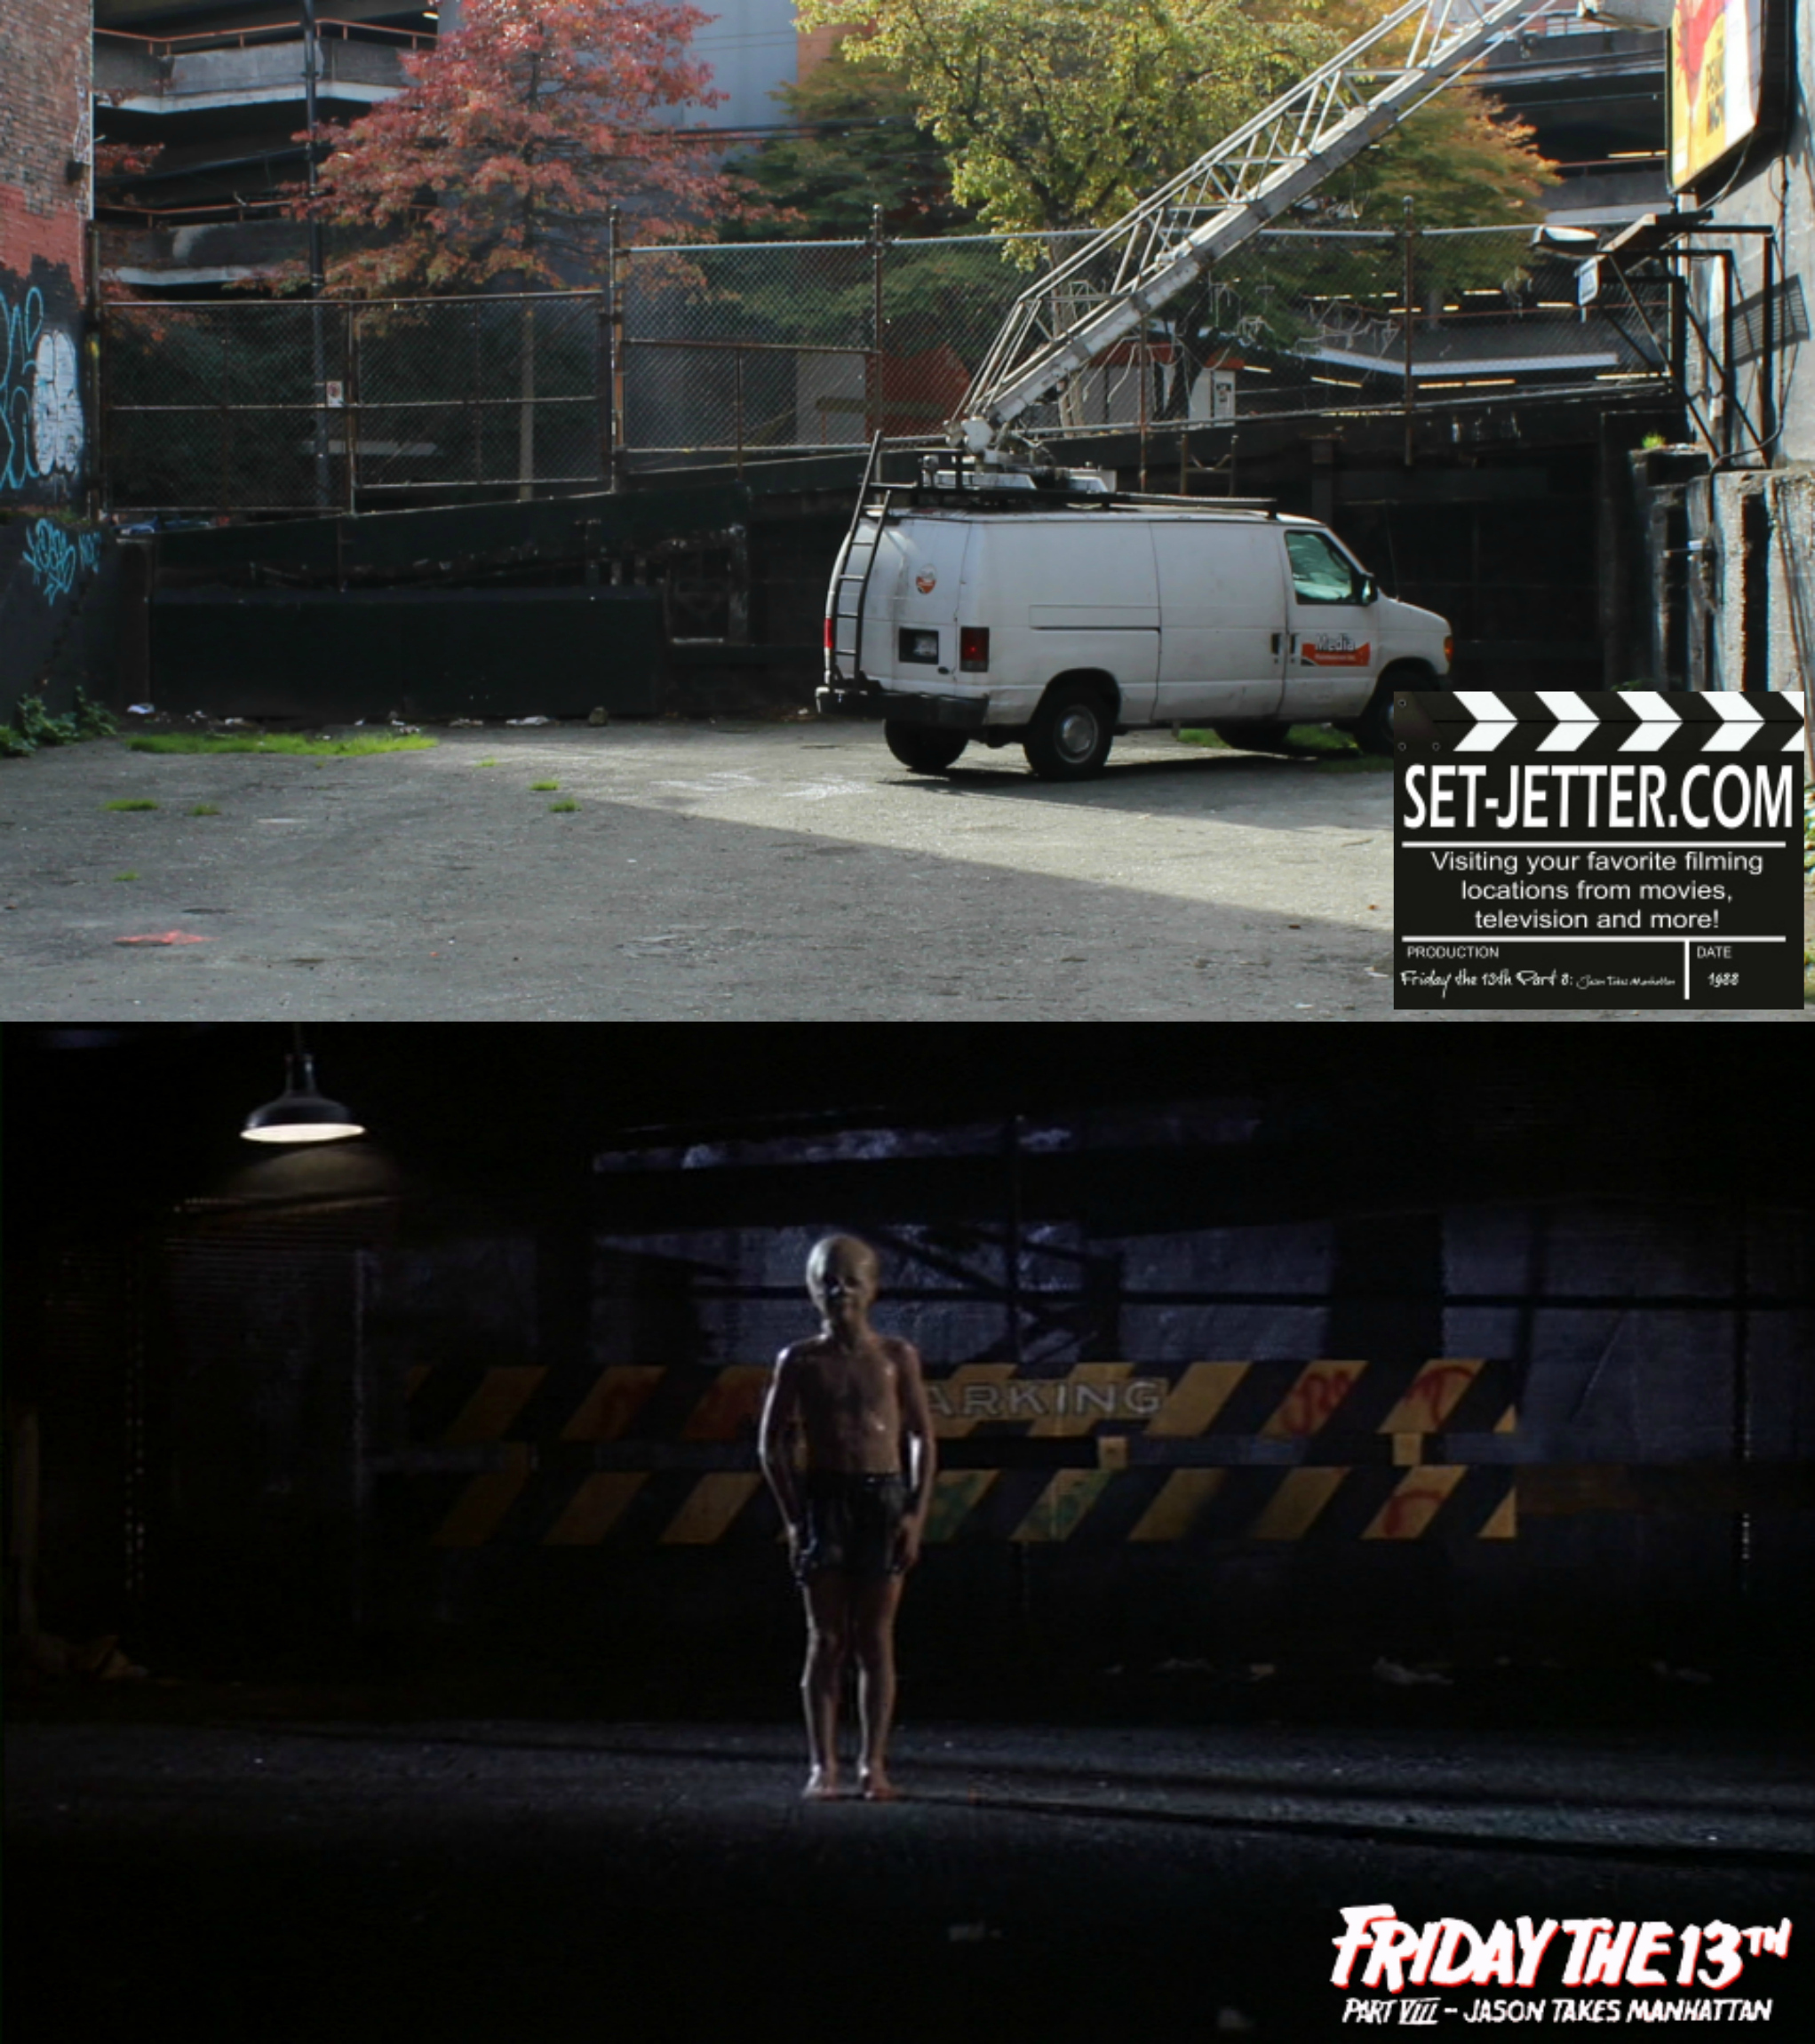 Friday the 13th Part 8 comparison 50.jpg